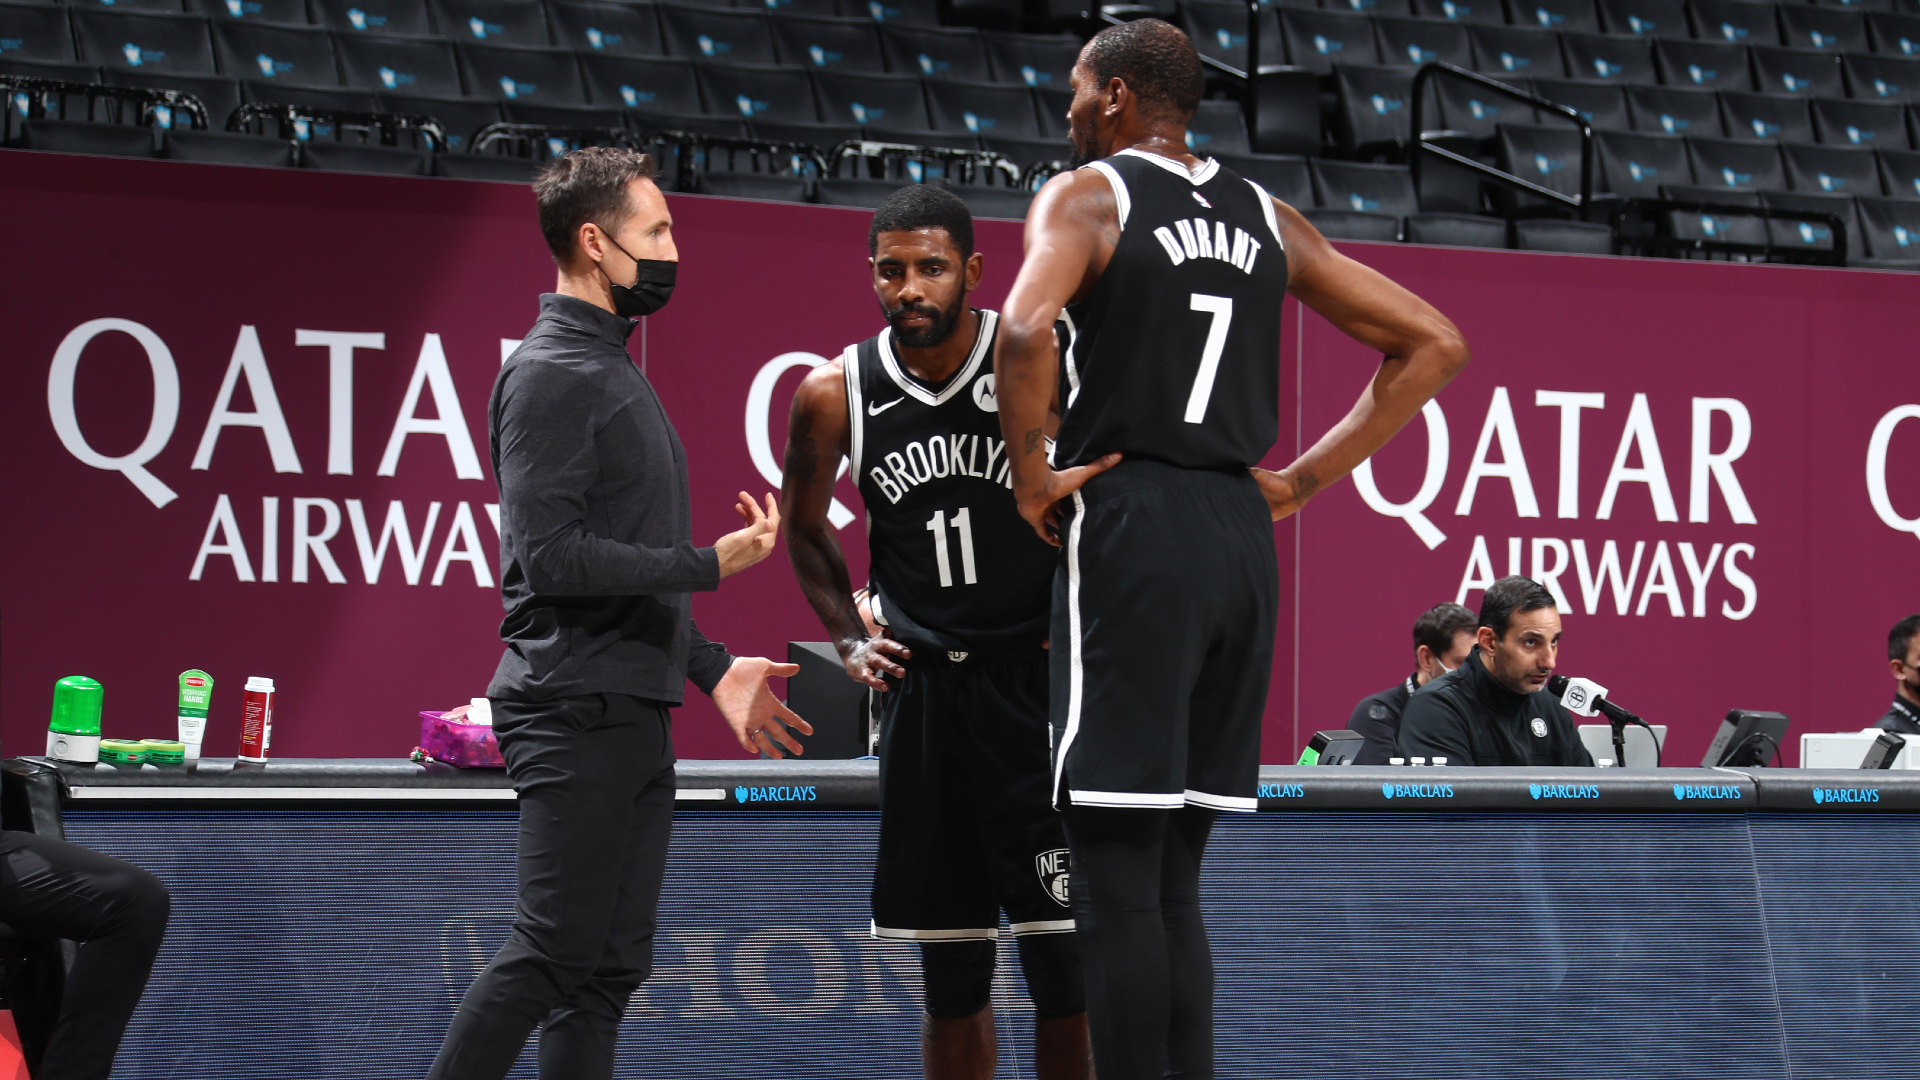 Nets must find 'connectivity and balance', says Nash amid Harden trade reports